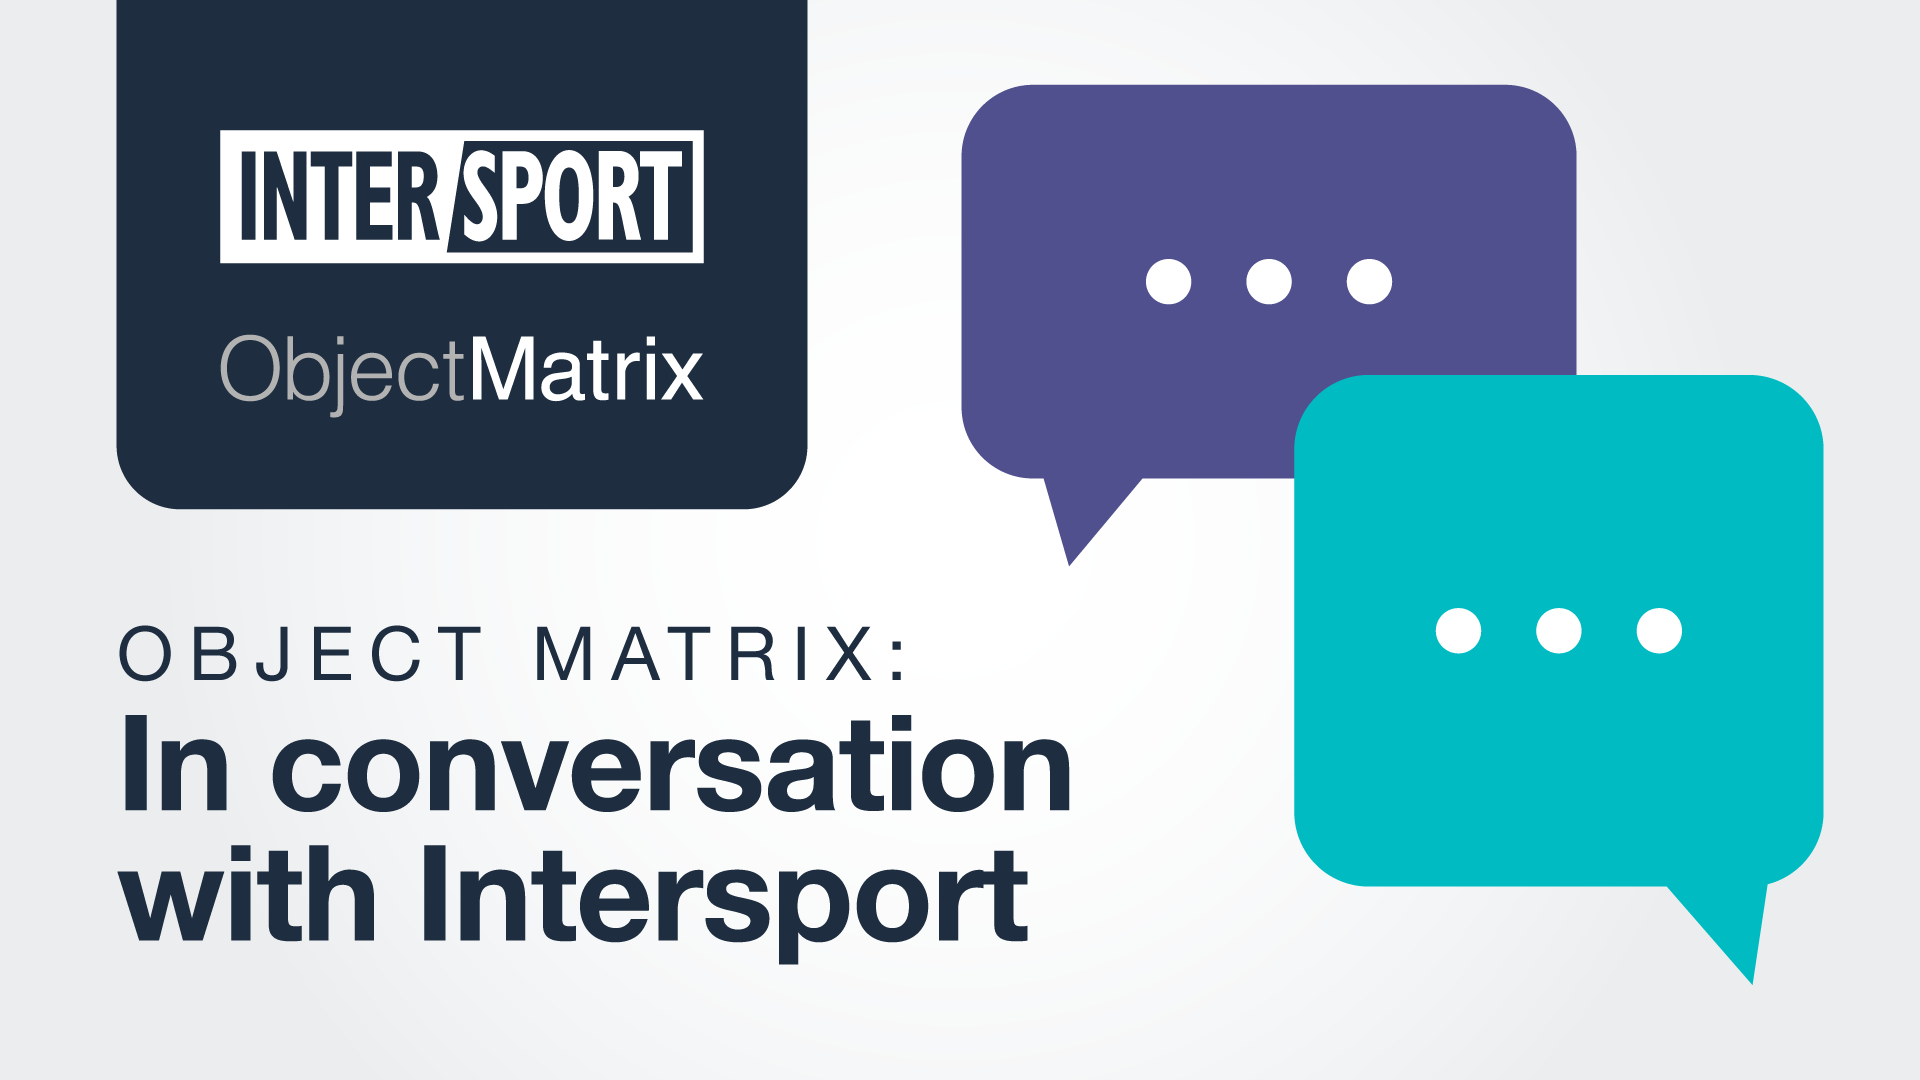 Object Matrix in conversation with Intersport